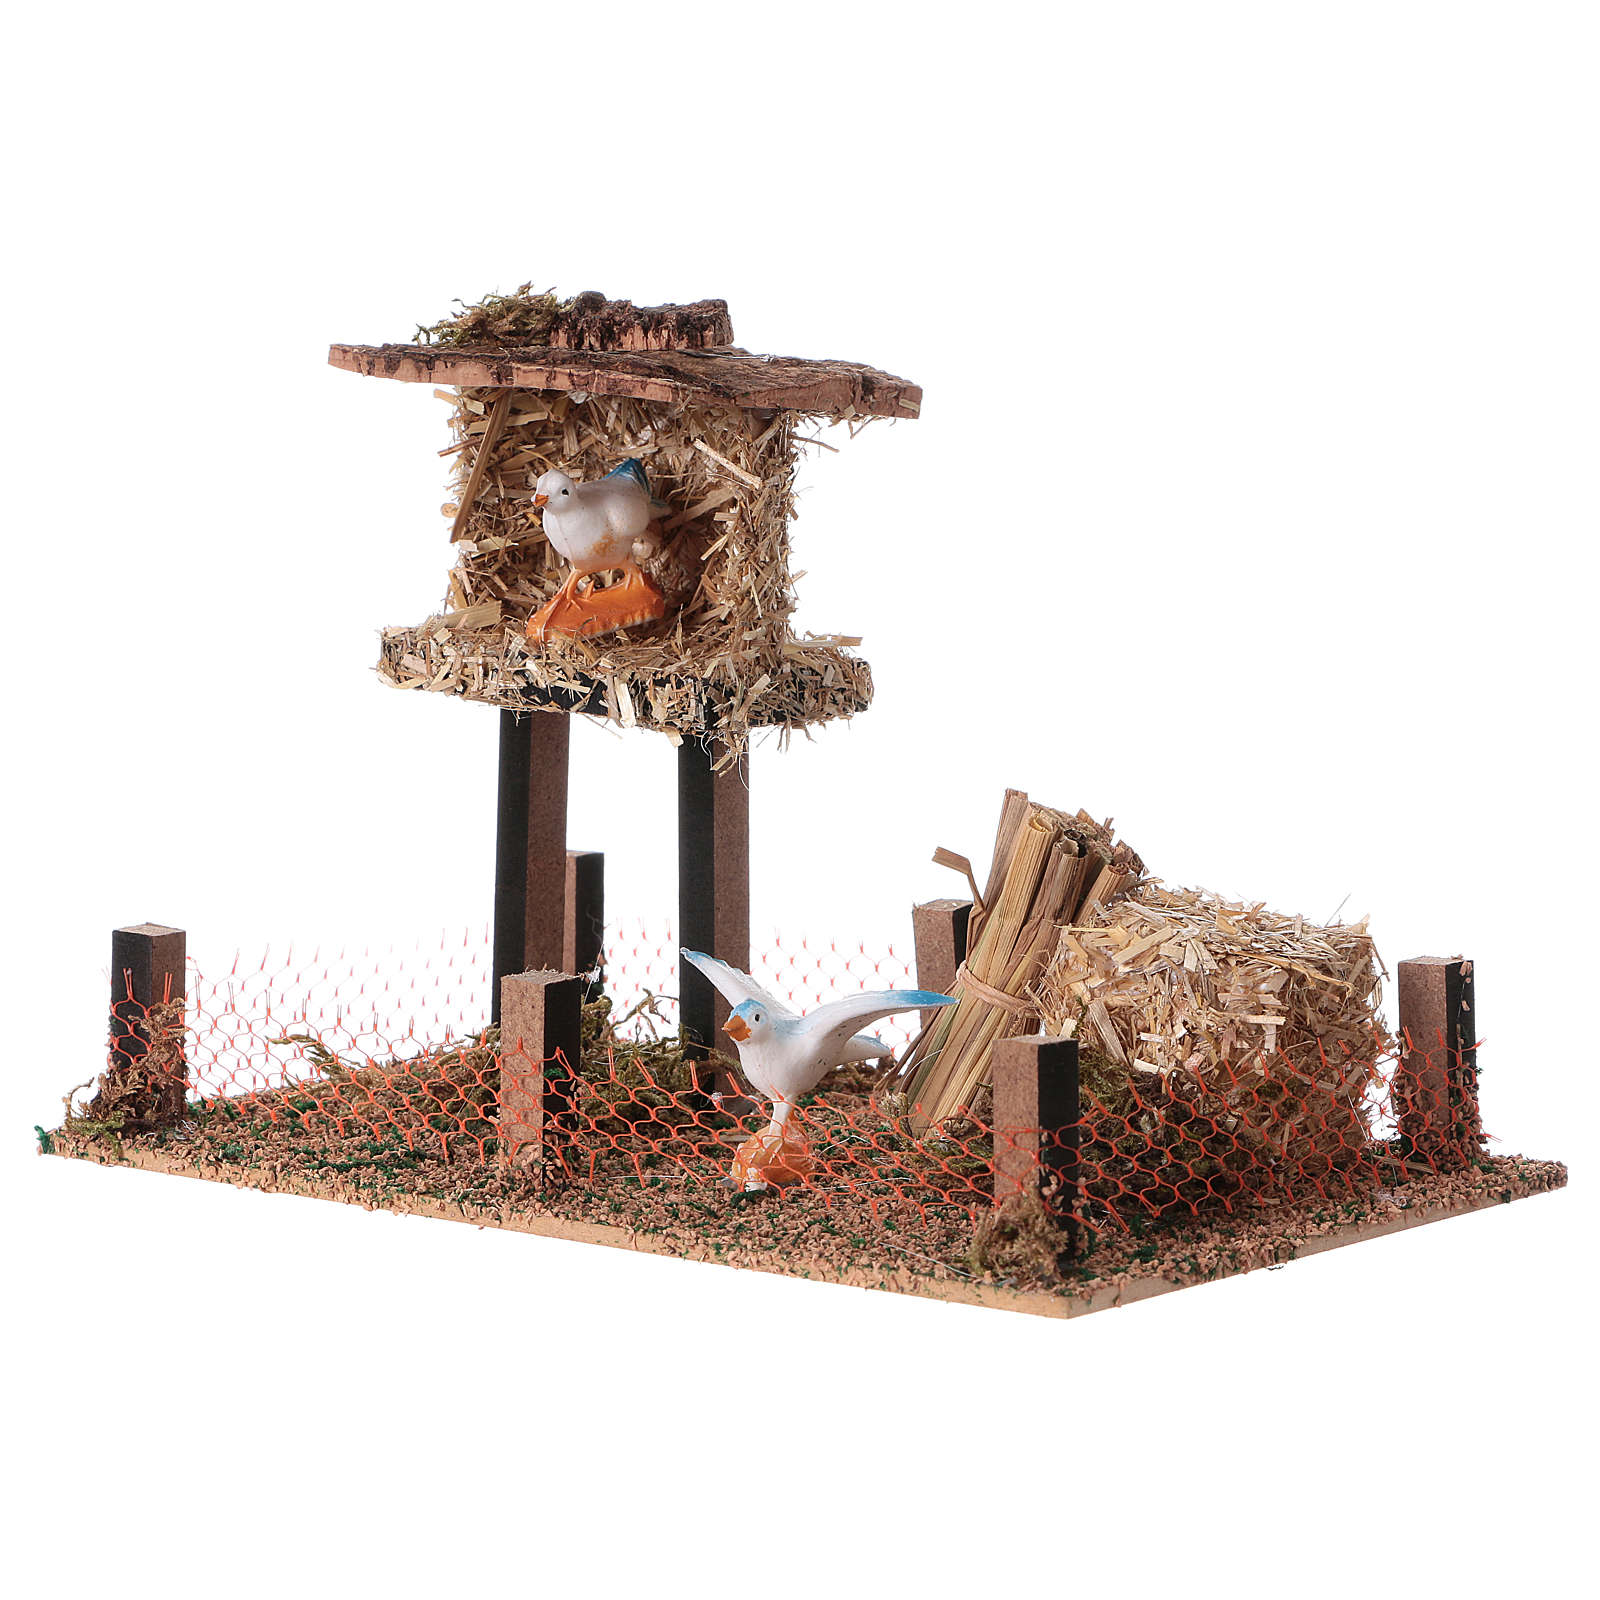 Cork bird house with hay 10x20x10 cm 3